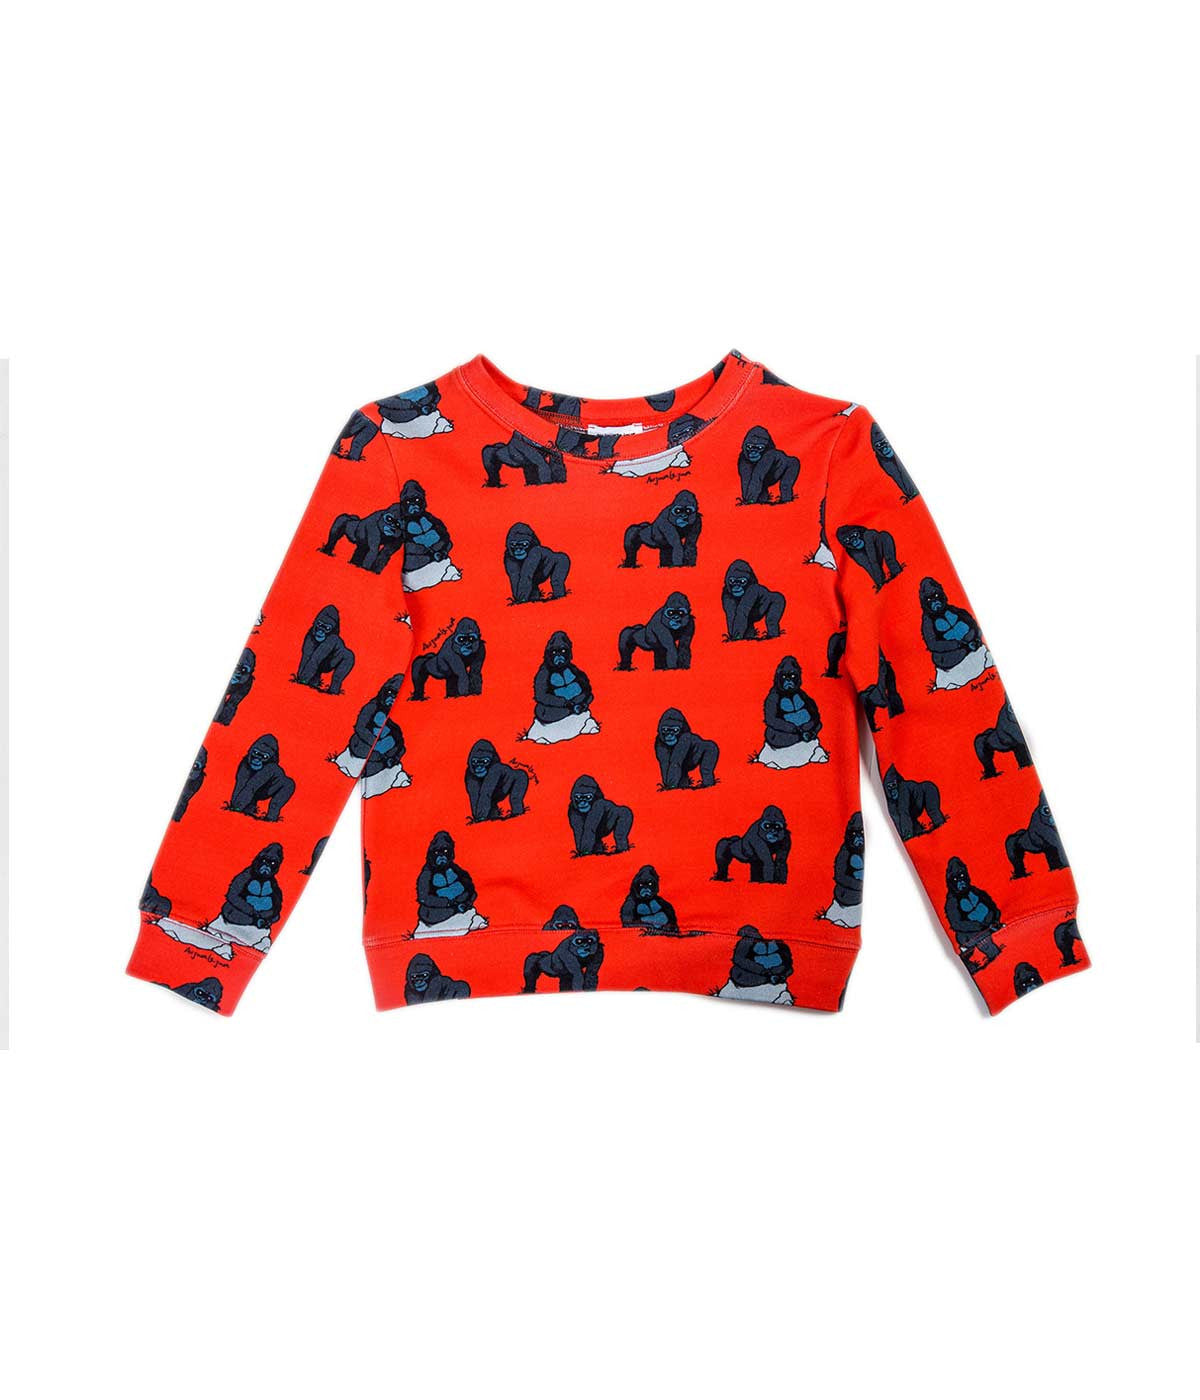 Red Orange Gorilla Print Sweatshirt